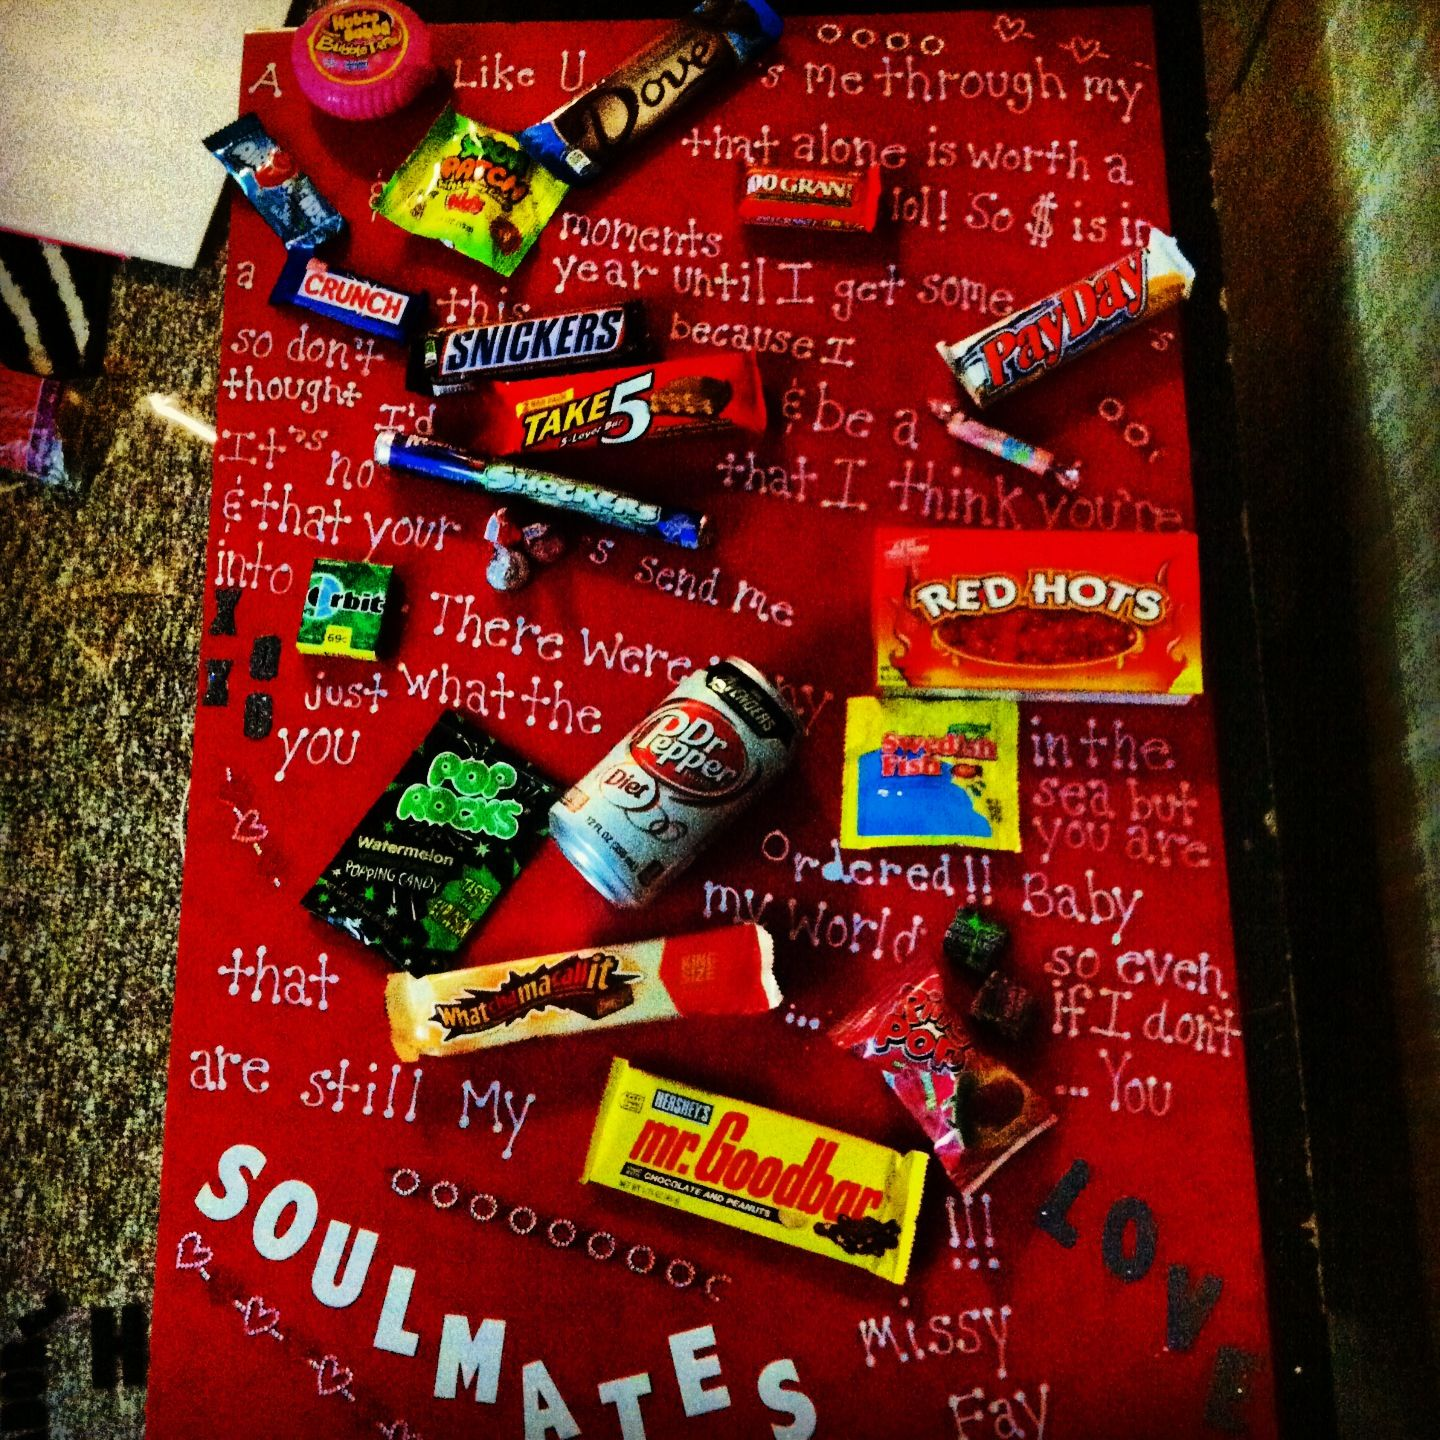 My candy gram valentines day present for my man this year  foam